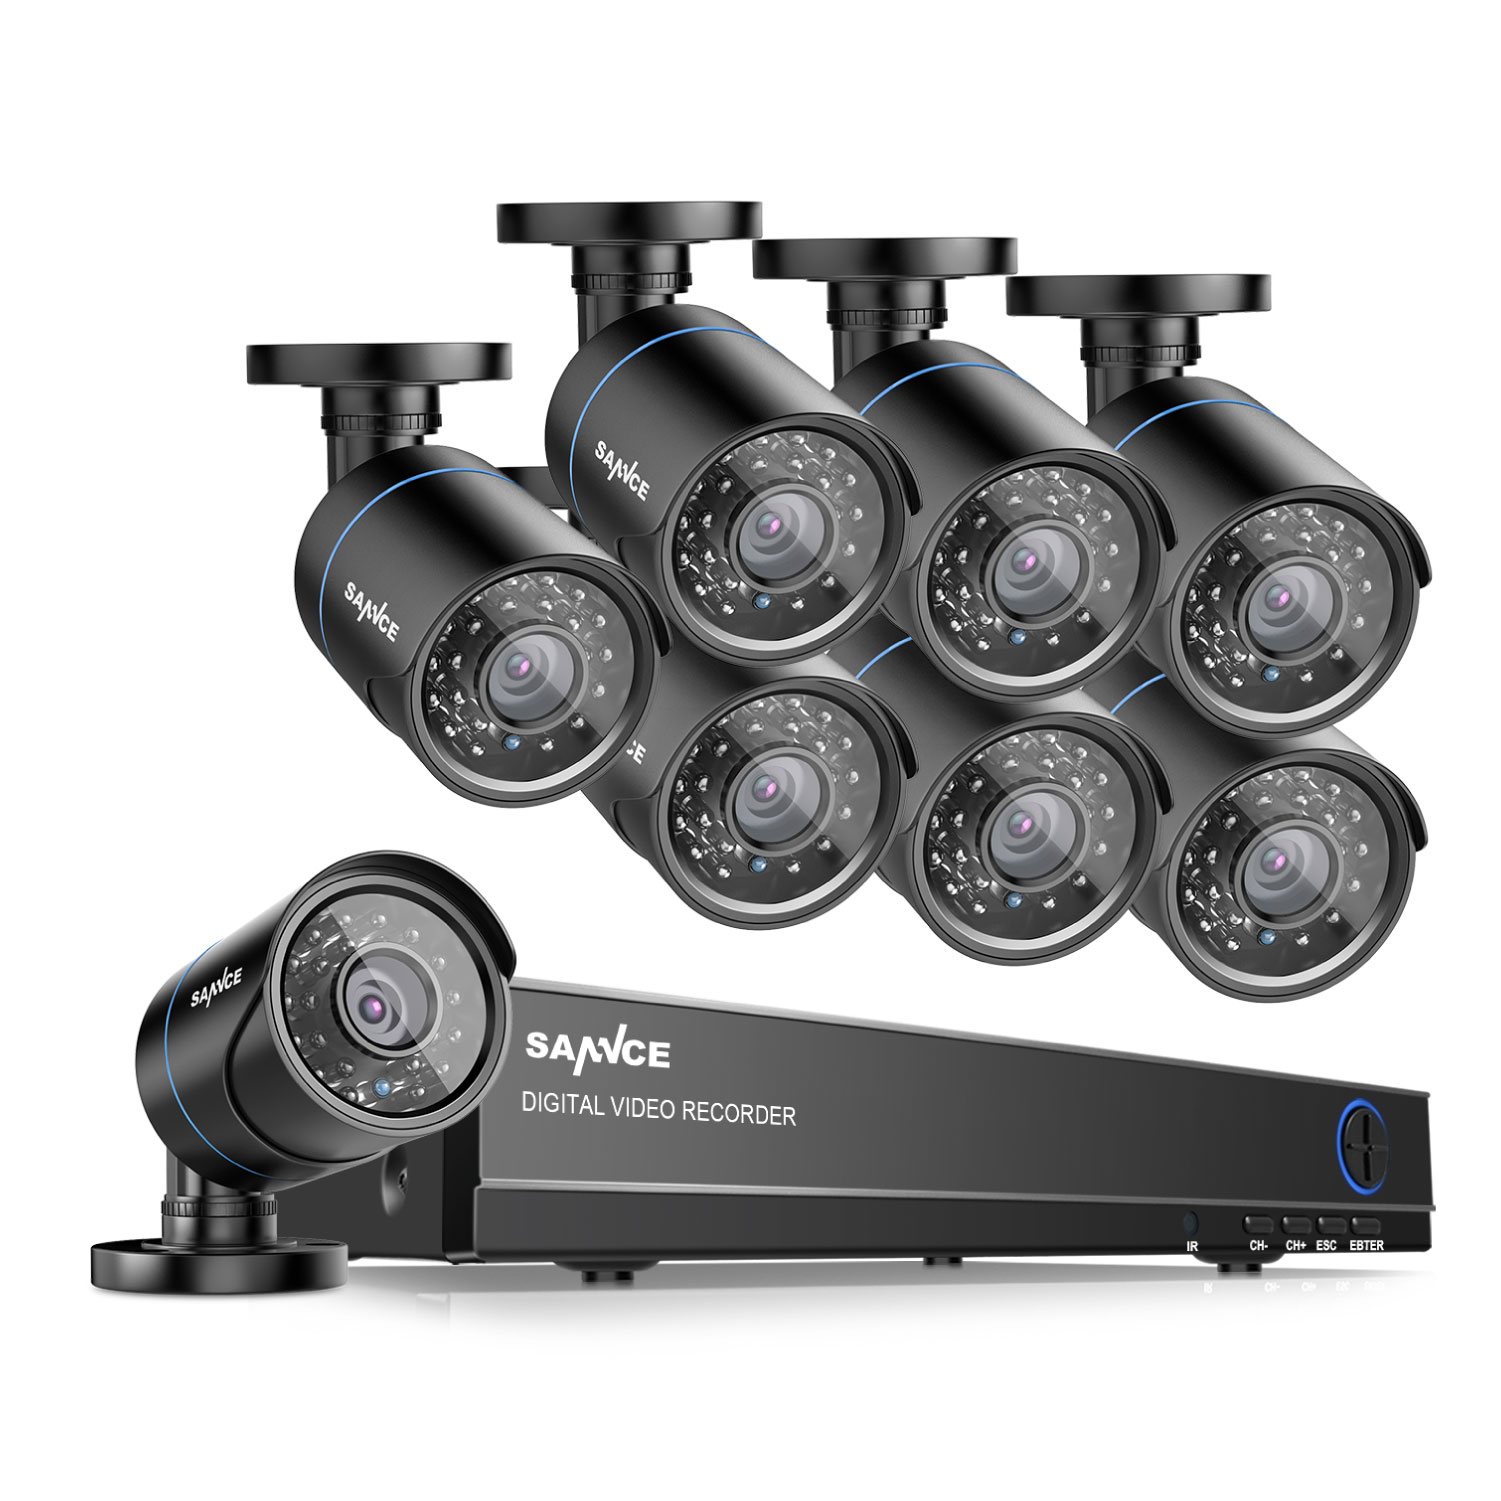 SANNCE 8CH 960H HD DVR 8pcs 720P IR outdoor CCTV Home Security System Cameras Surveillance Video Kits With Motion Detection NO Hard Drive Disk